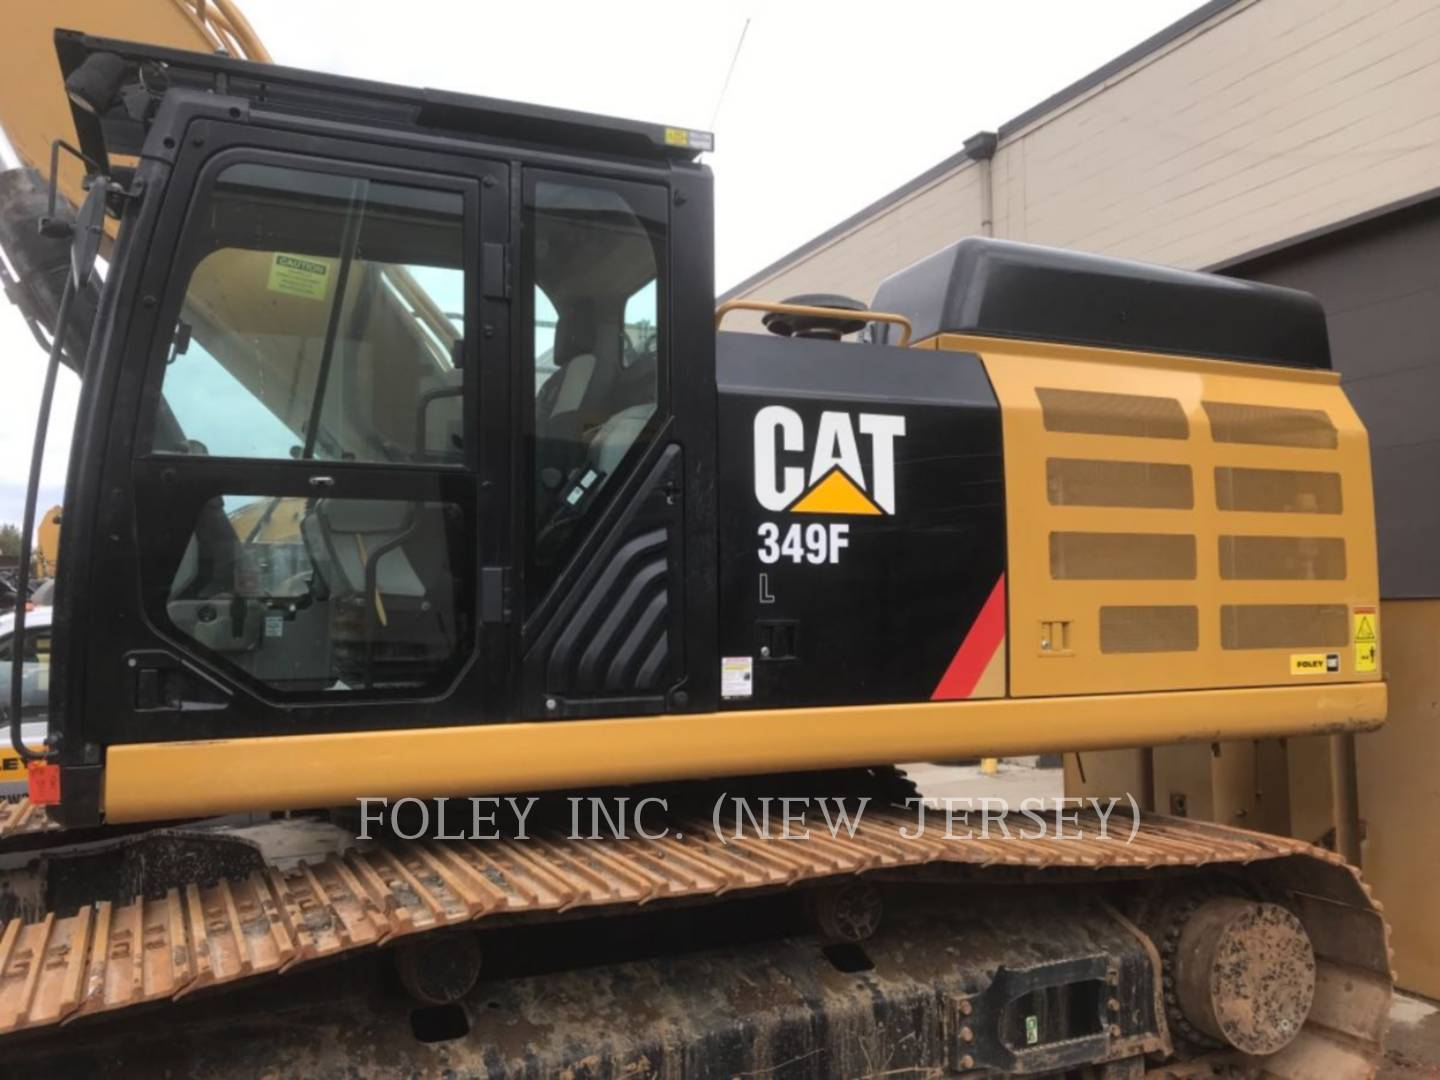 Used Track Excavators for Sale in NJ, PA, DE and Staten Island